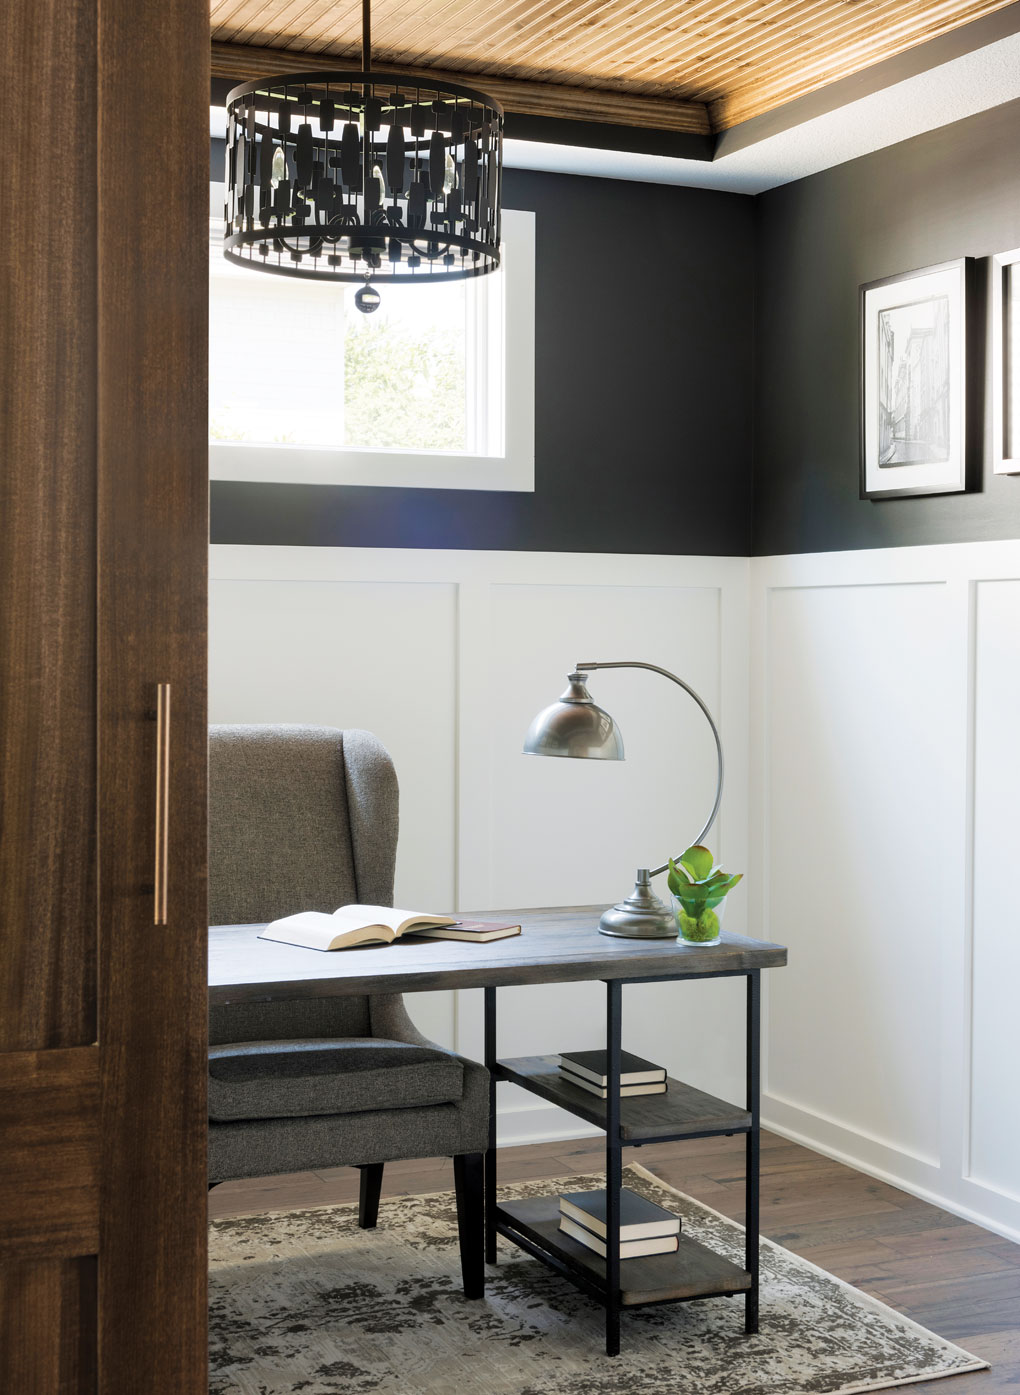 A home office with desk, chair and lamp.